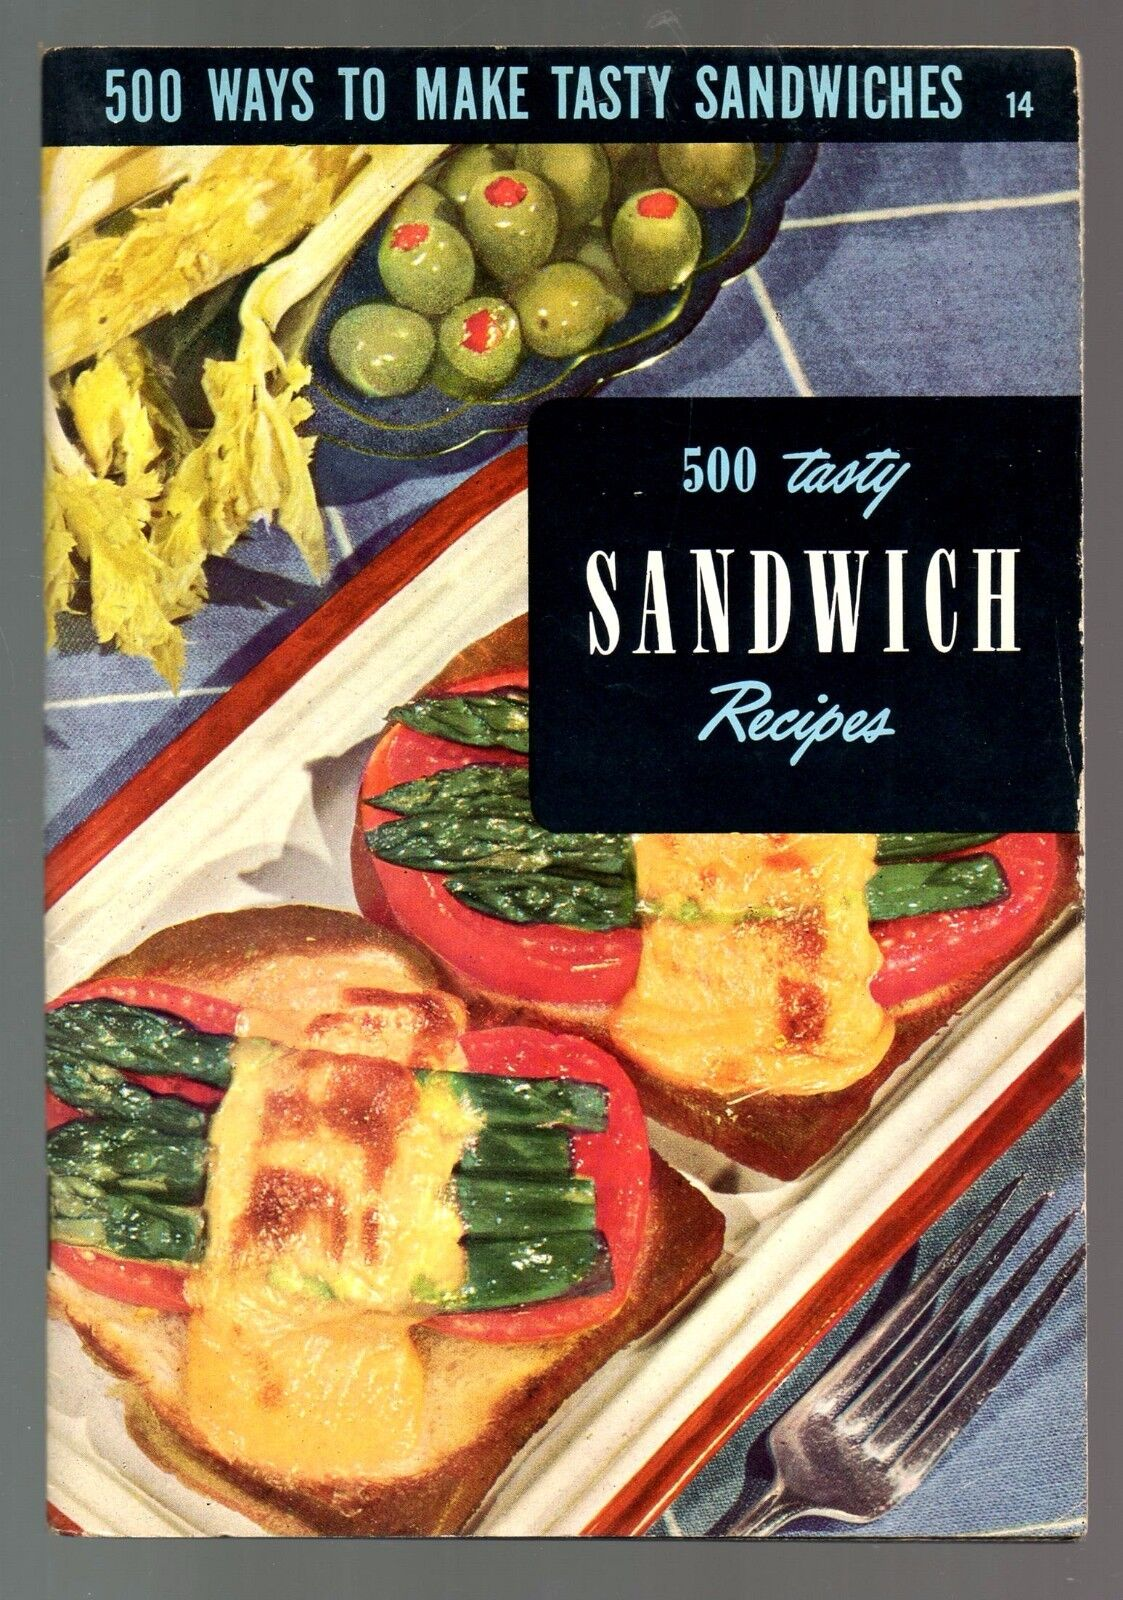 500 sandwich recipes                                     for sale click here